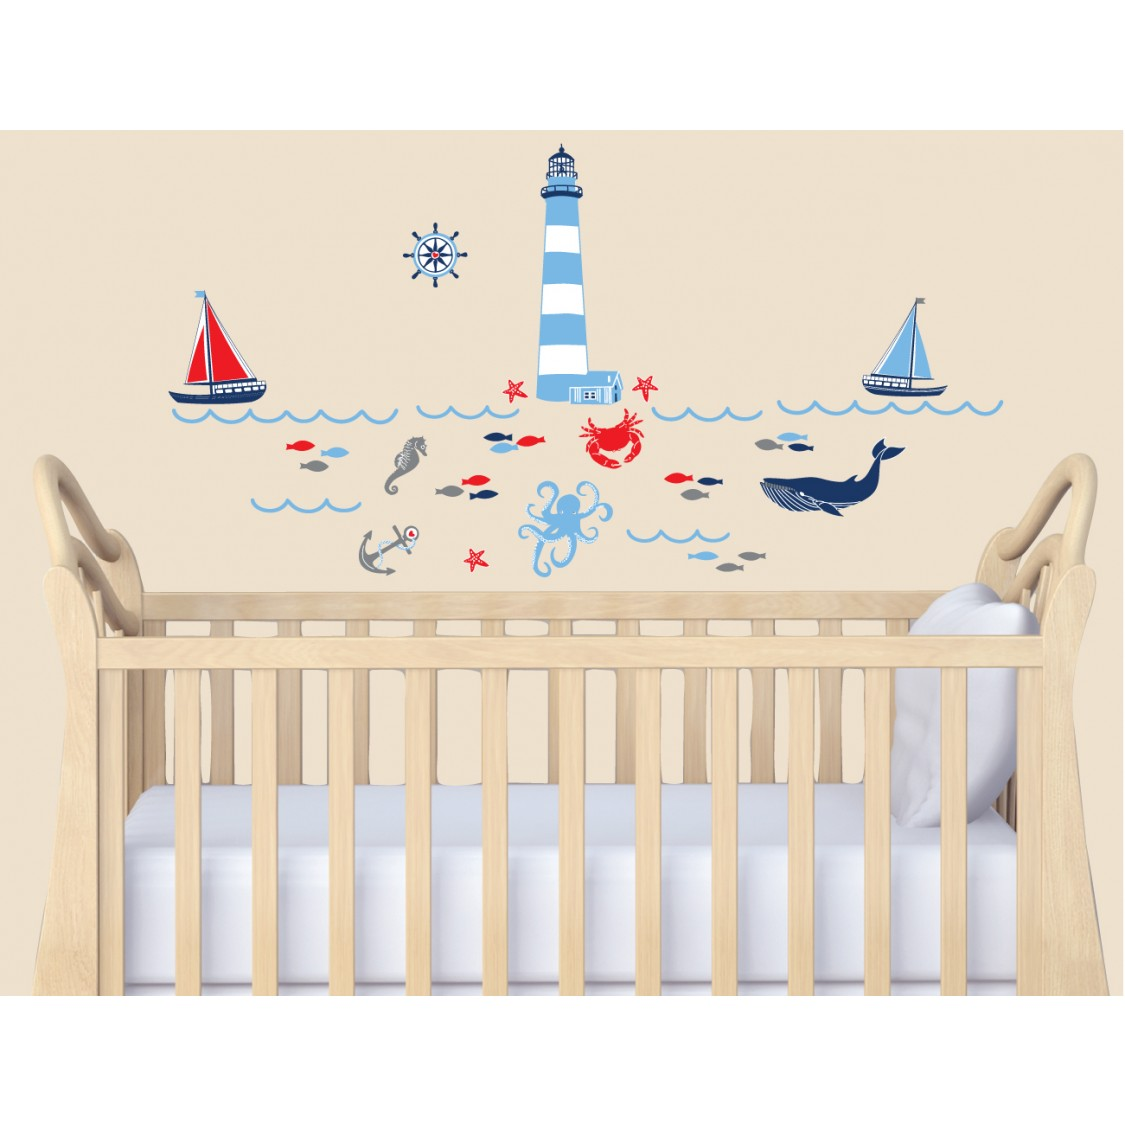 Peel And Stick Wall Decals Sea Life Wall Decals For Nursery Room